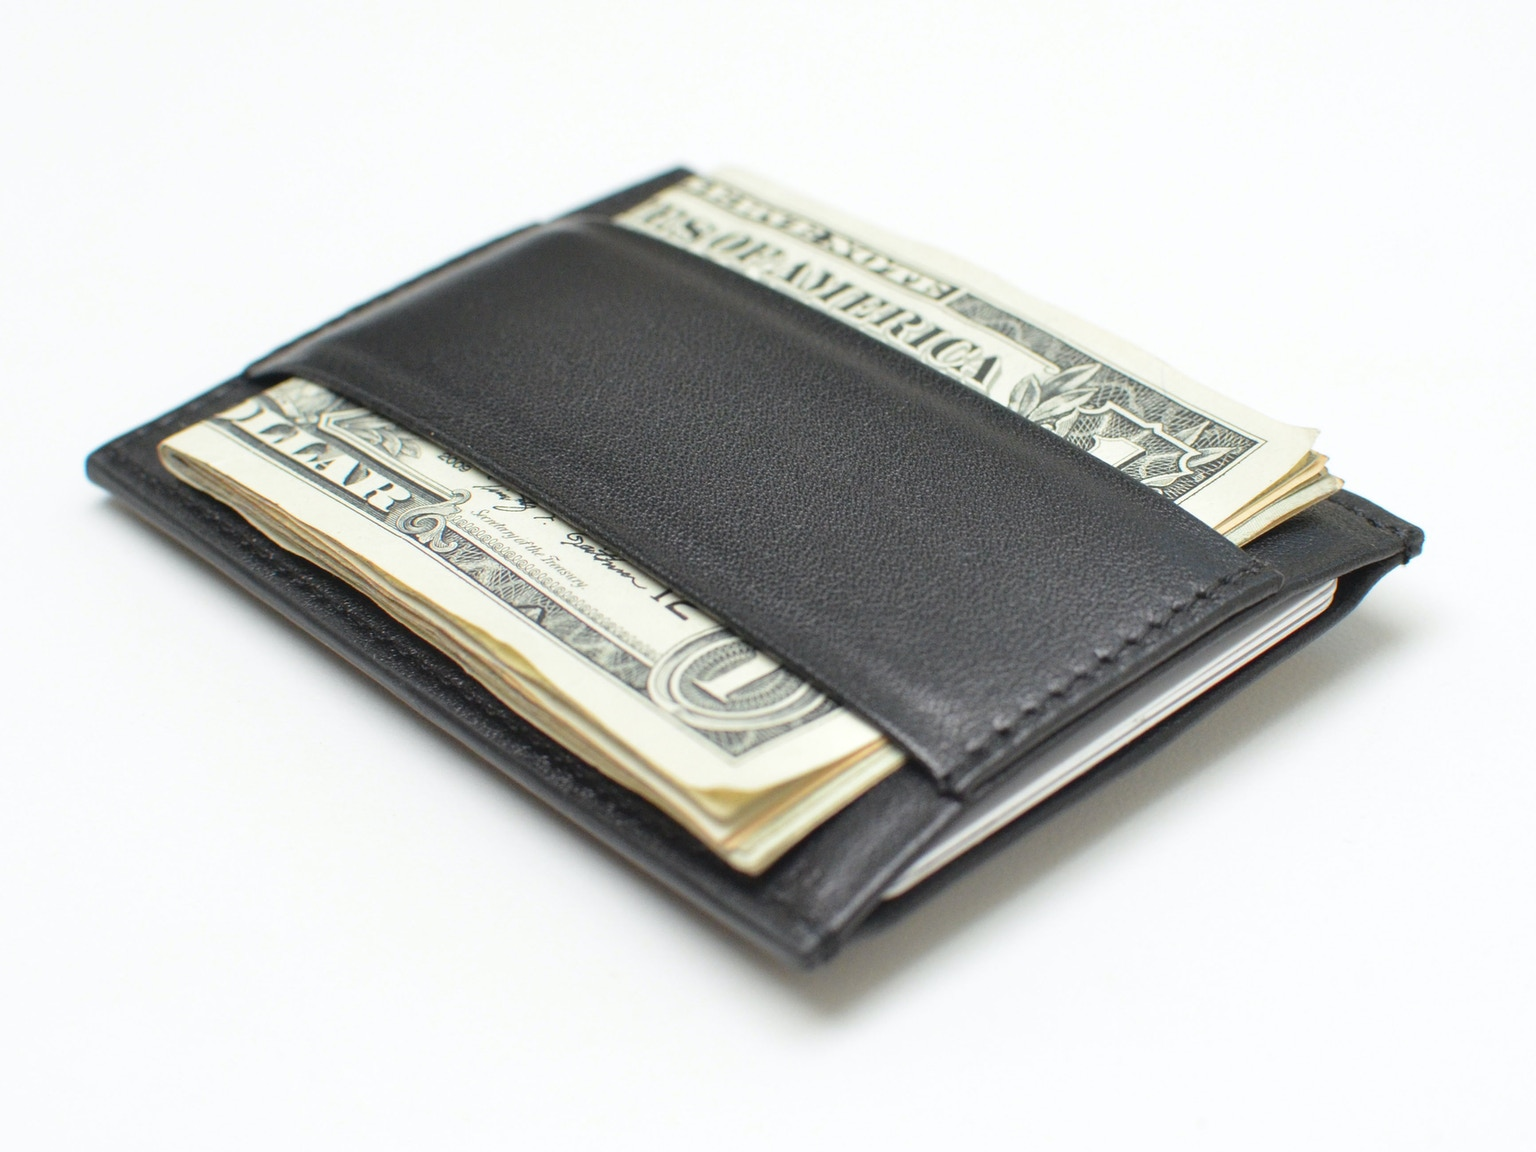 Minimalist By Capsule The Definitive Essentials Wallet By Robert Sha Capsule Kickstarter